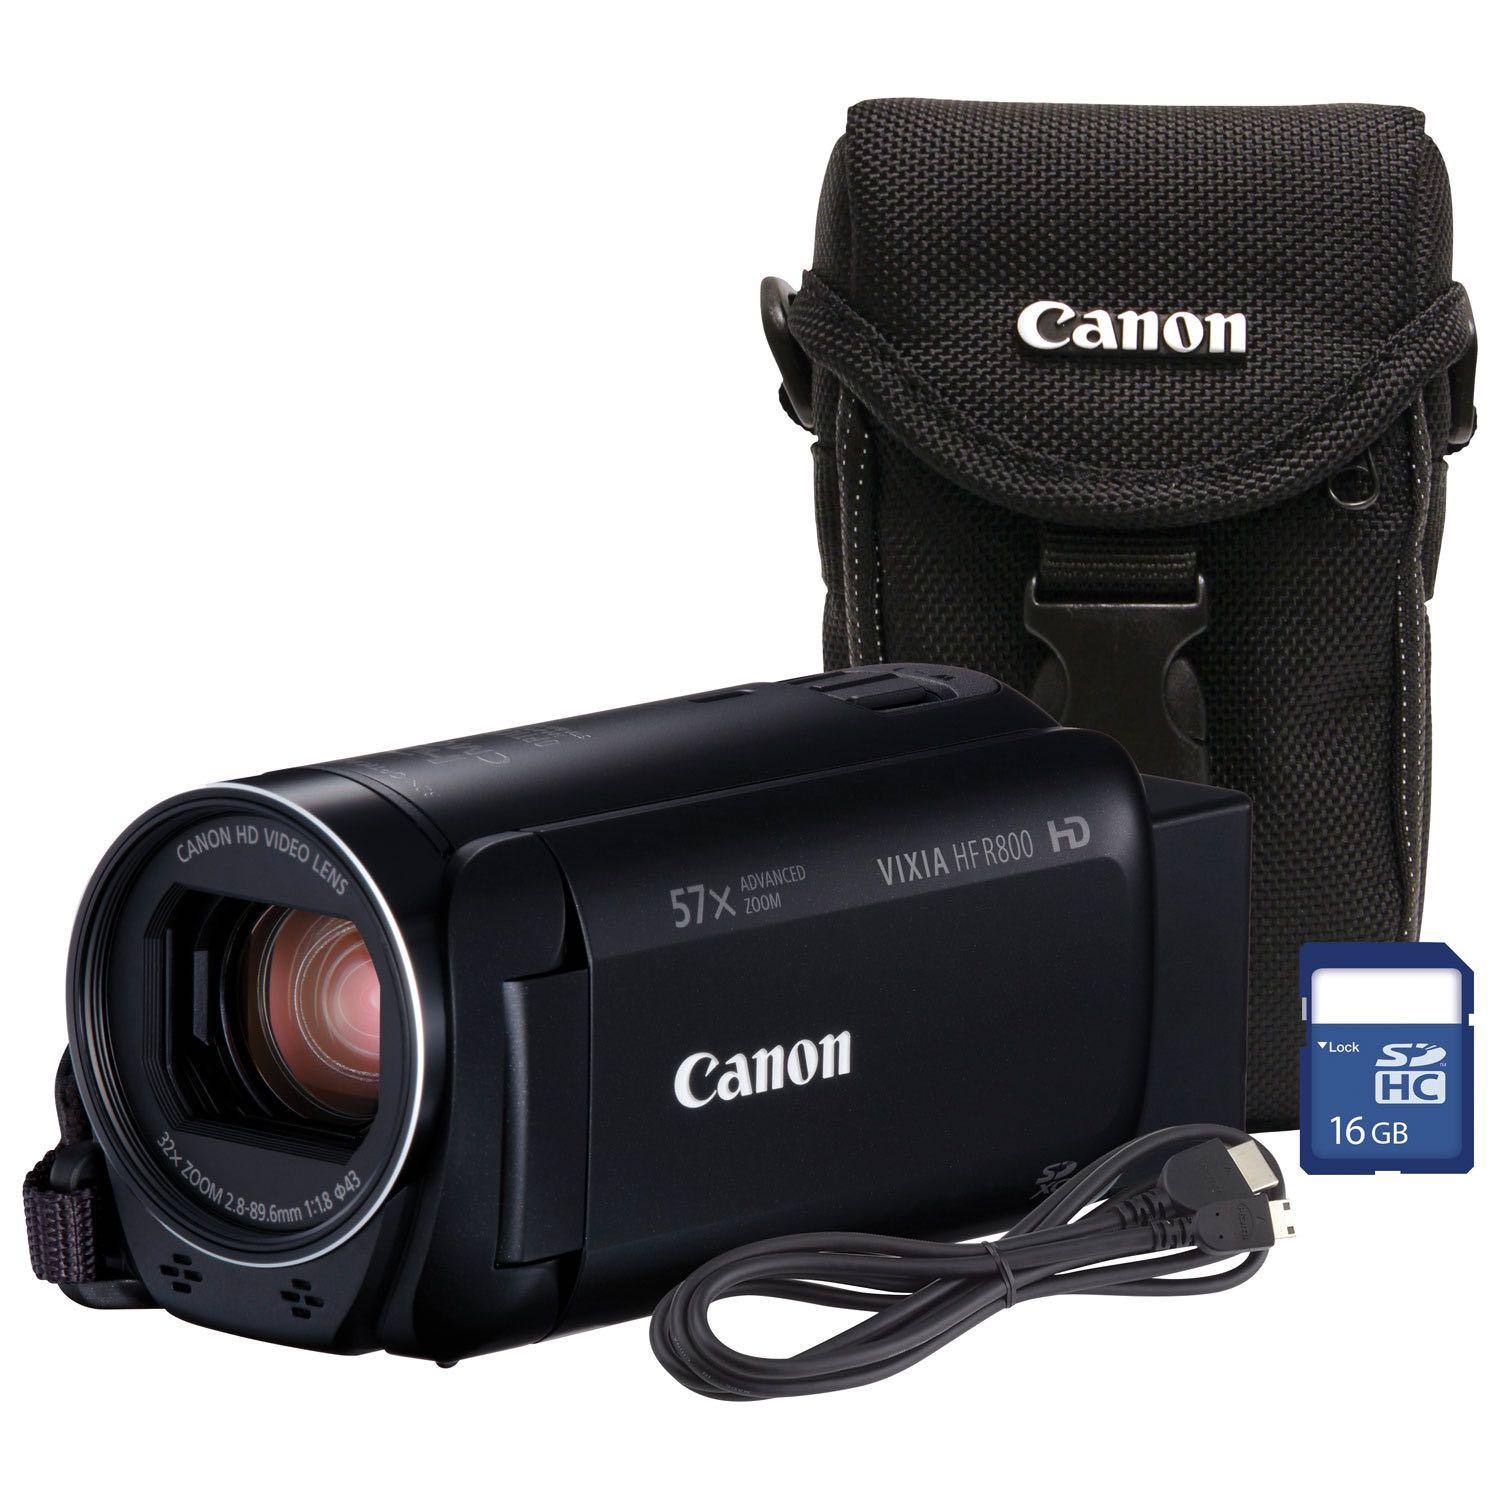 Best Canon camcorder